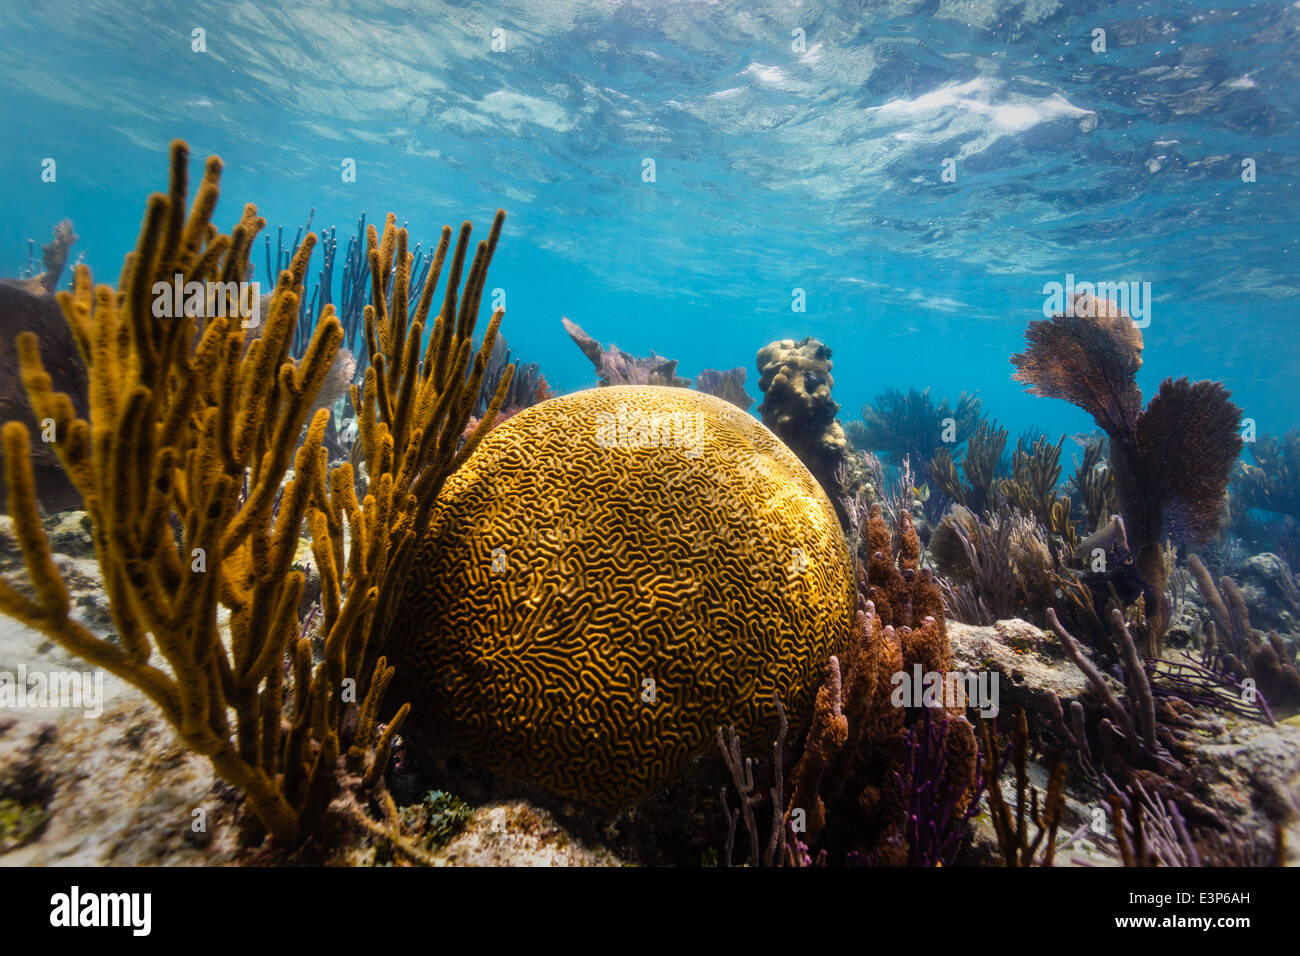 Close up of large round brain coral and branch coral on tropical coral reef in Caribbean Sea - Stock Image